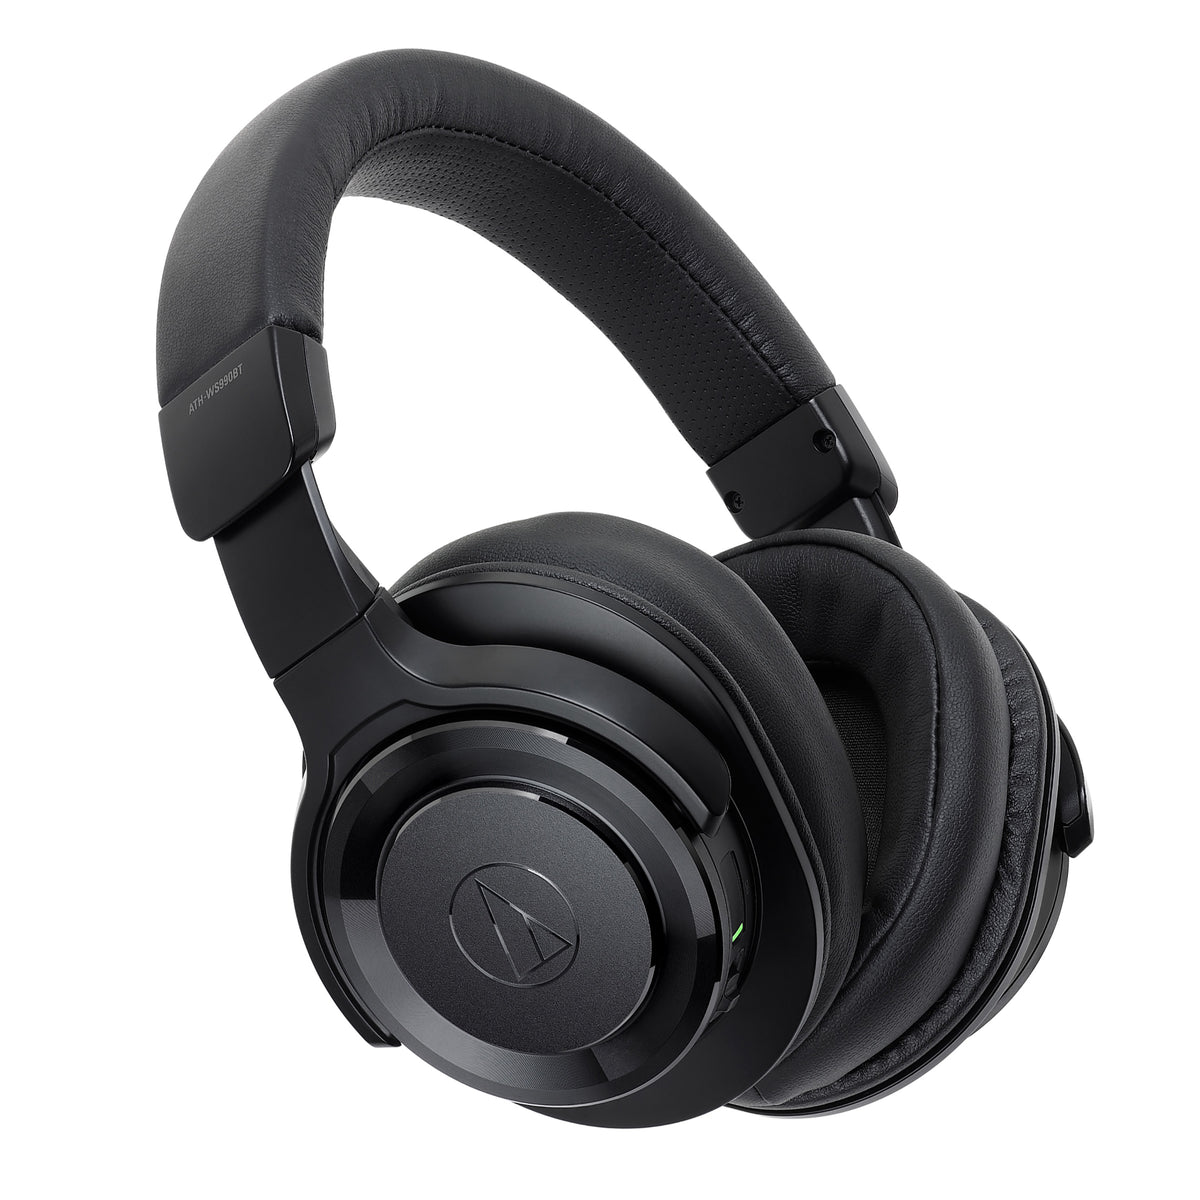 Audio-Technica: ATH-WS990BTBK Solid Bass Wireless Over-Ear Headphones With Built-in Mic & Control